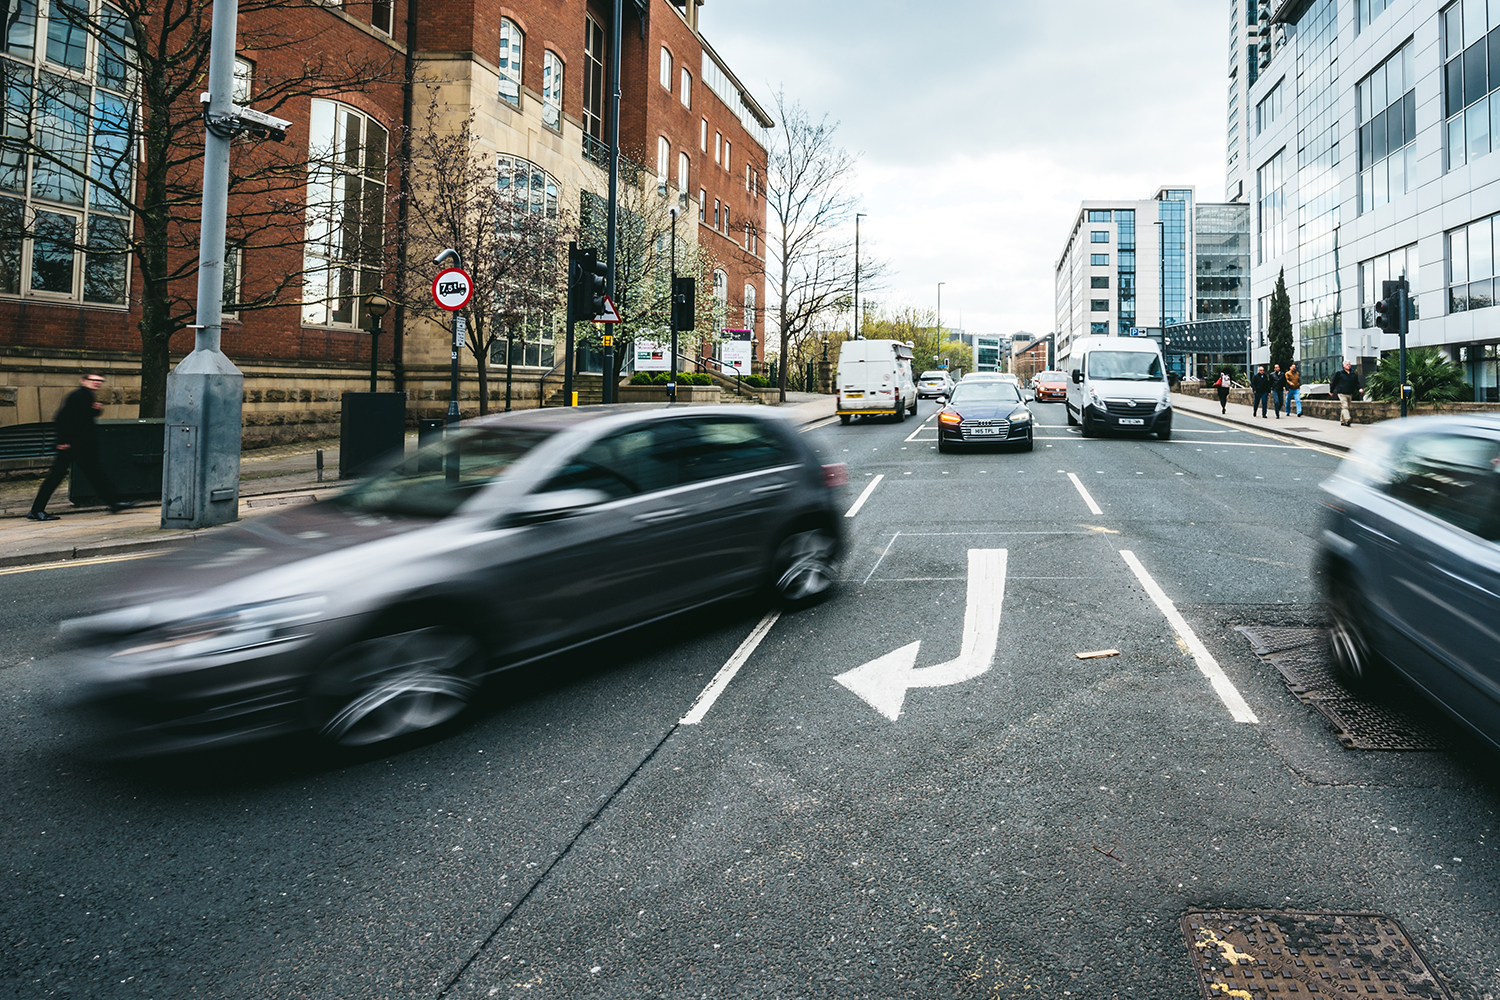 Keep to the Code: 3 Year Driving Study Shows Road Danger Caused by Unsafe Manoeuvres From Drivers 'Cutting In' at Speed